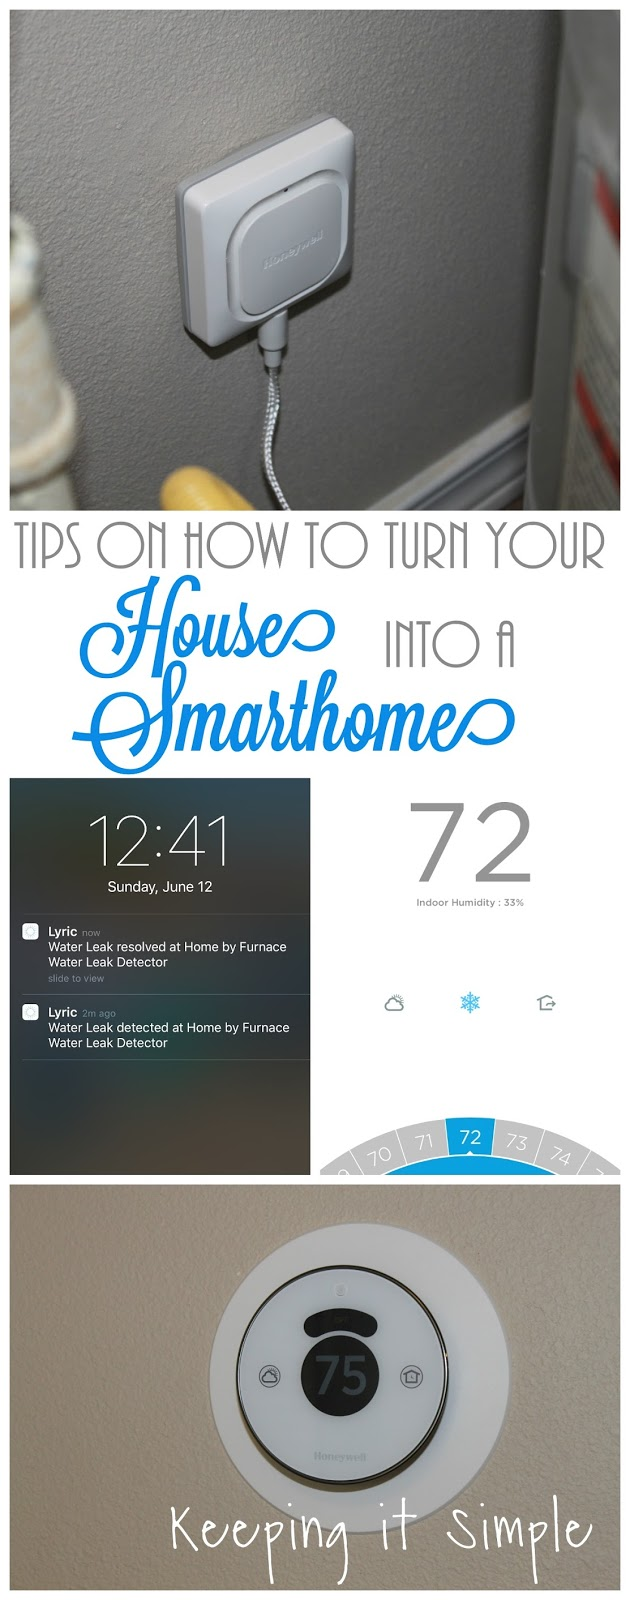 Tips On How To Turn Your House Into A Smarthome Keeping